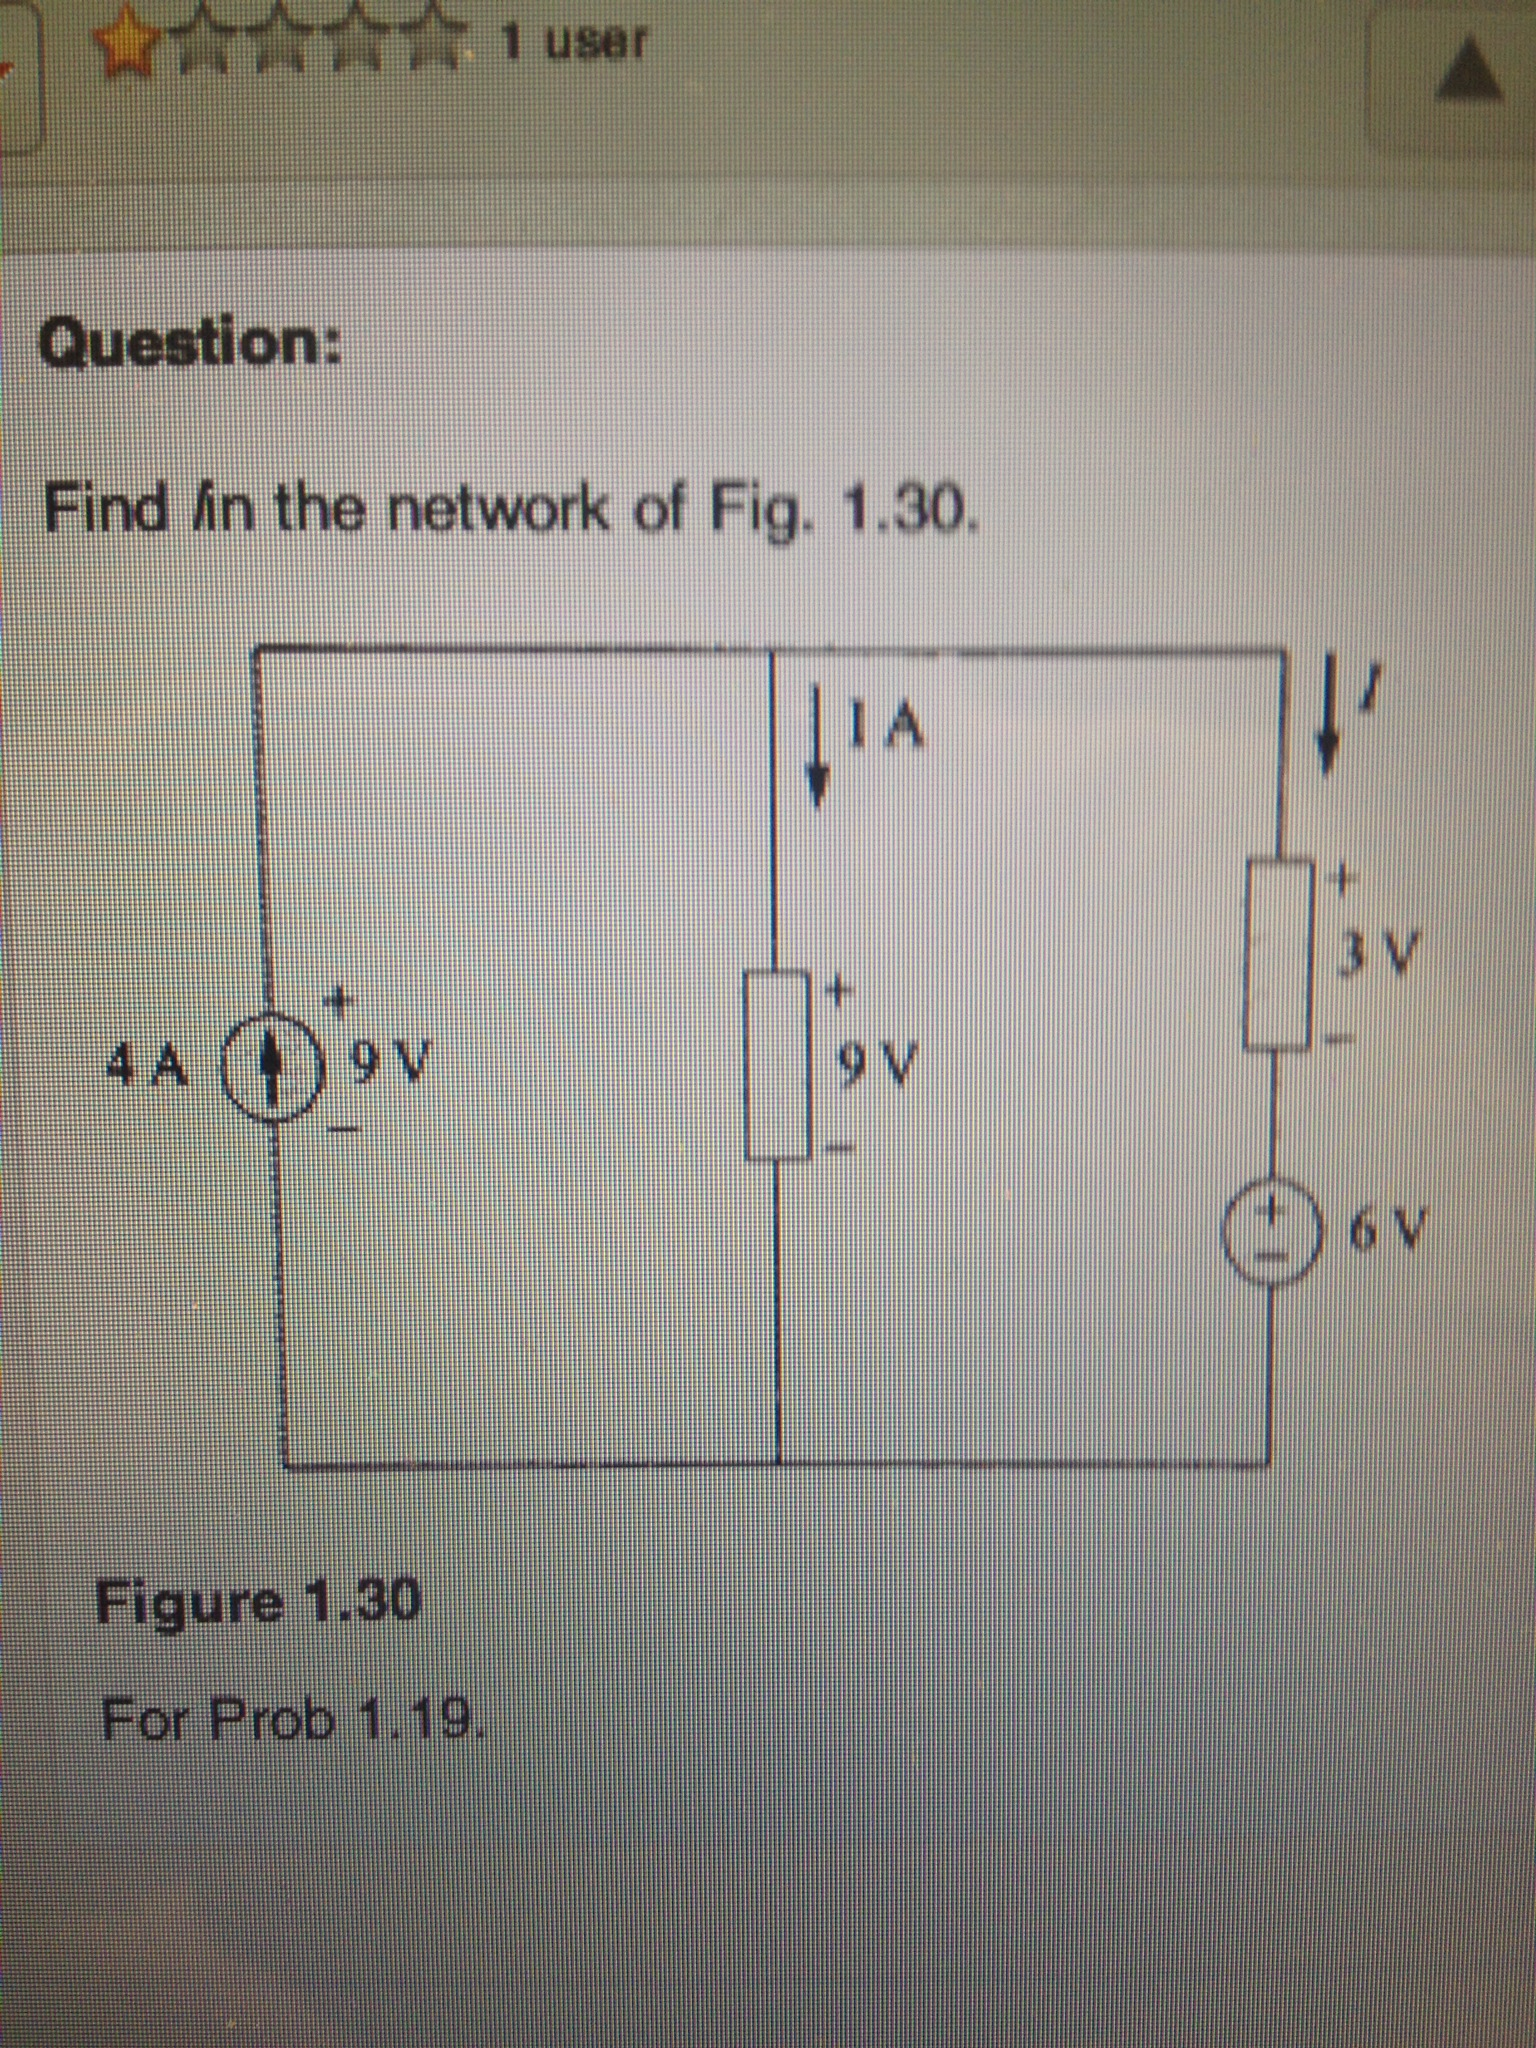 Find in the network of Fig.1.30